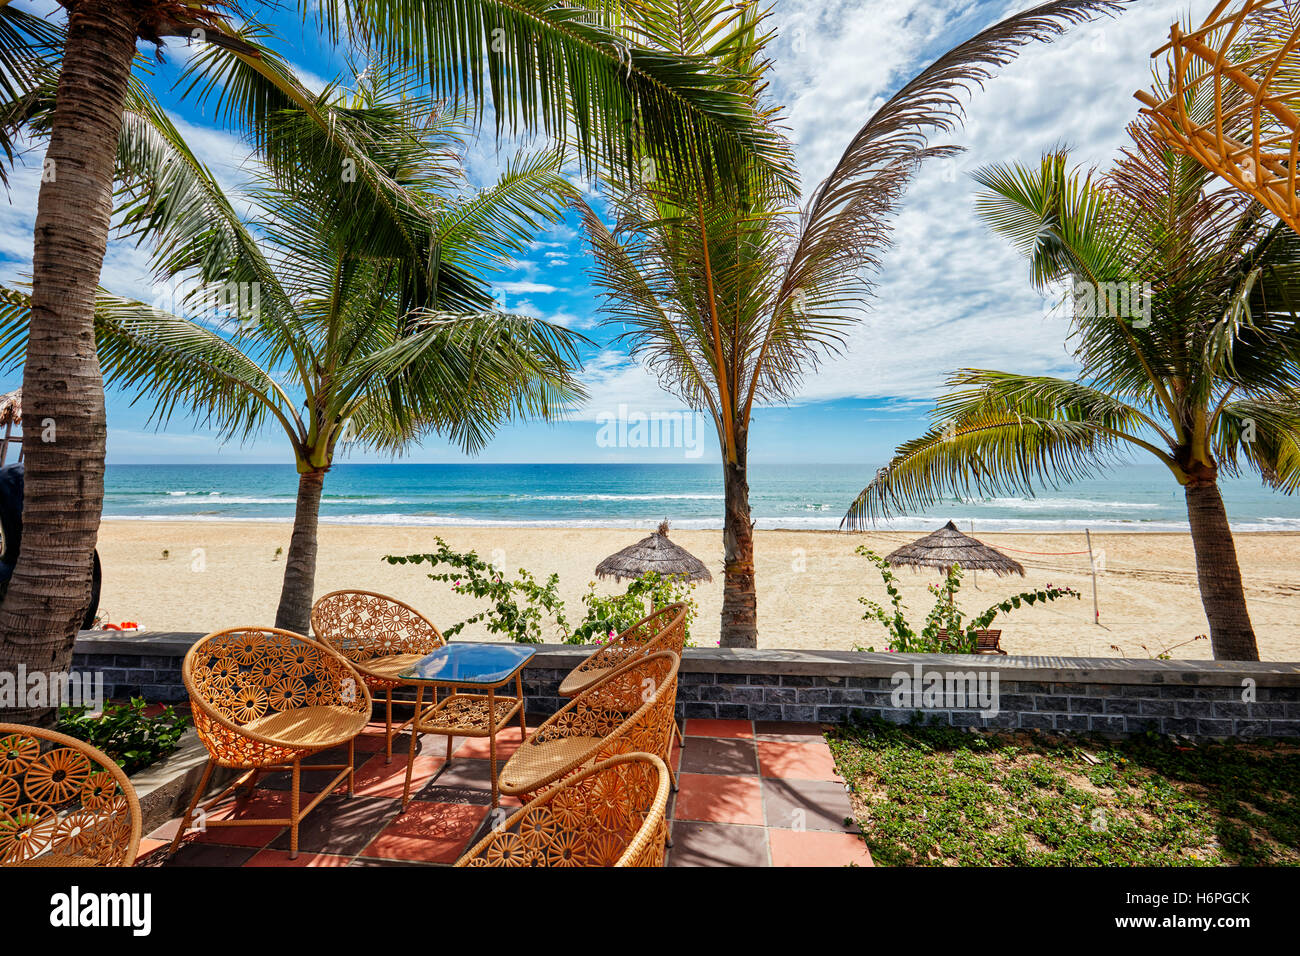 View of Lang Co beach from Thanh Tam Resort. Lang Co, Thua Thien Hue Province, Vietnam. - Stock Image